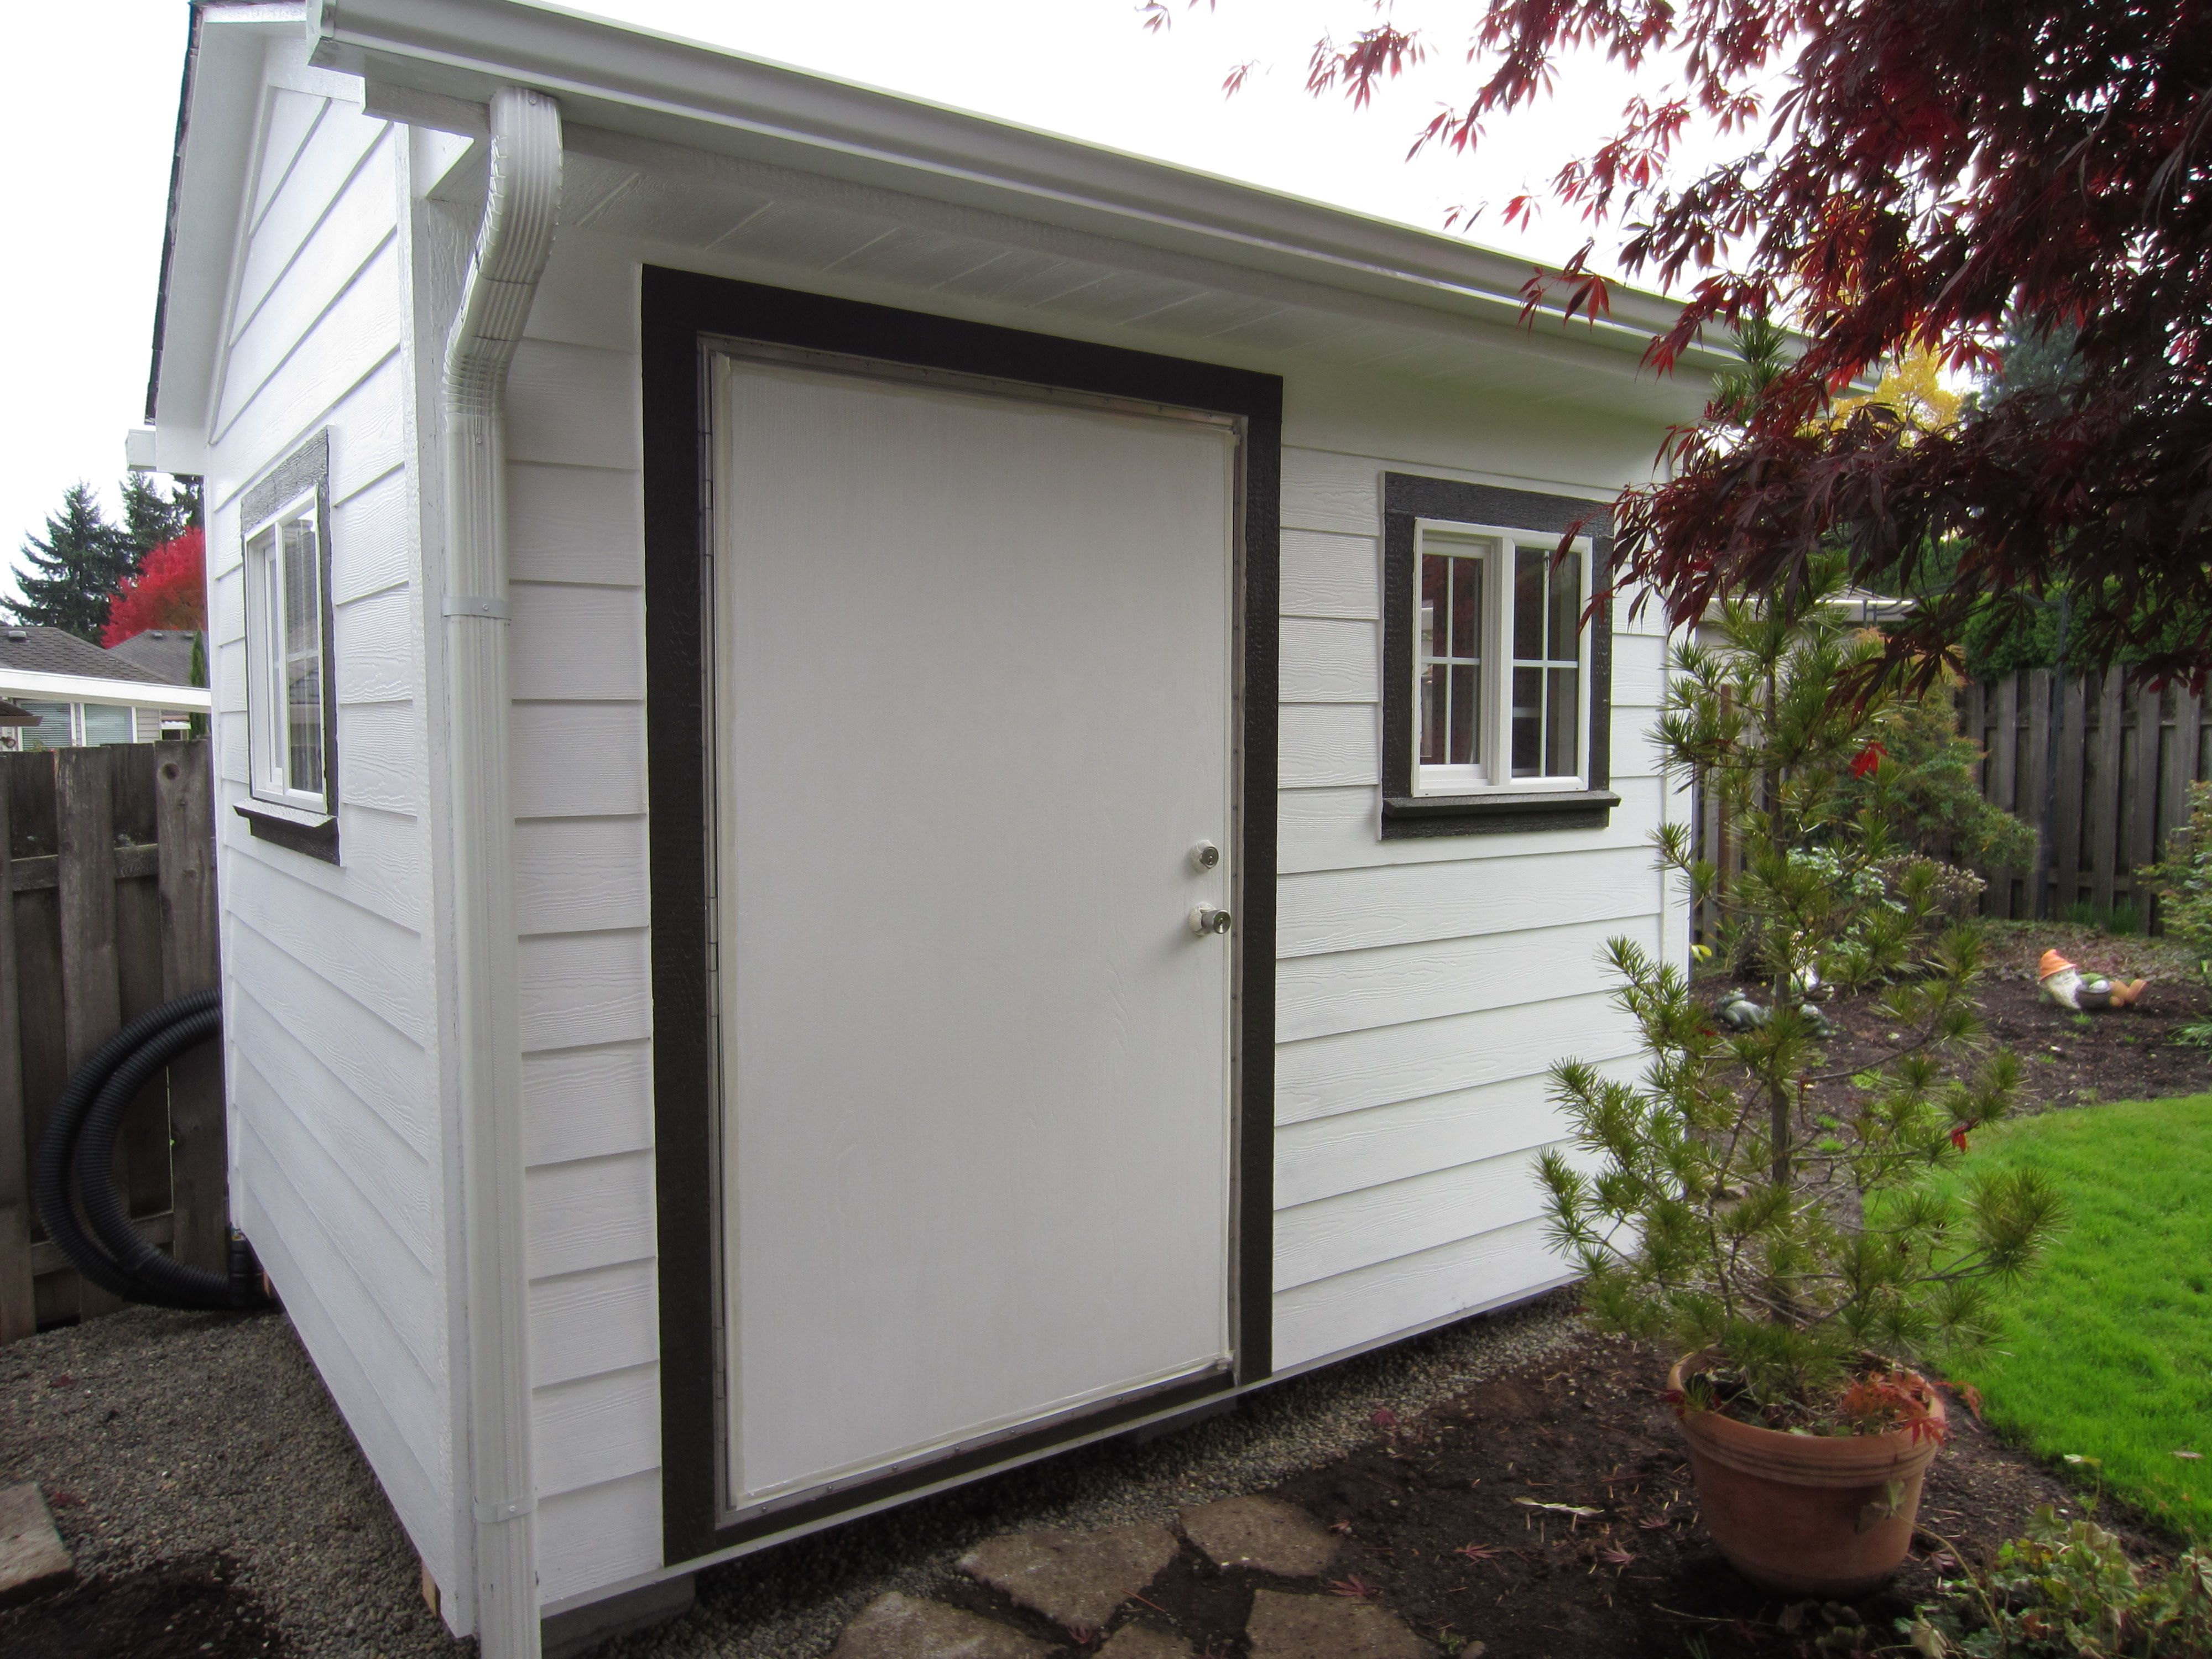 Storage Garden Shed Playhouse Craft Room Mother In Law